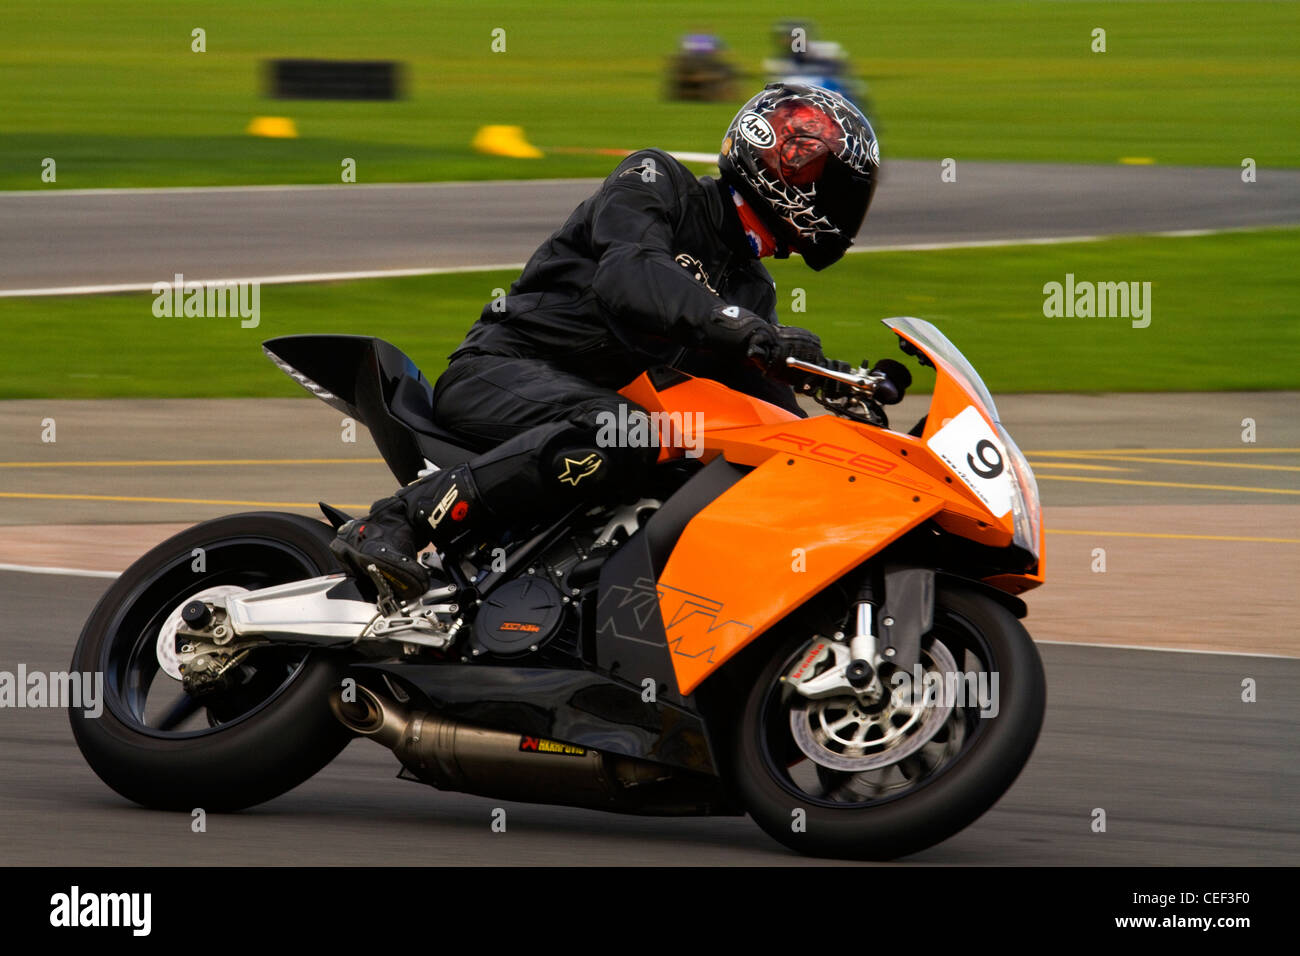 A photograph of a KTM RC8 Motorcycle on a track day - Stock Image